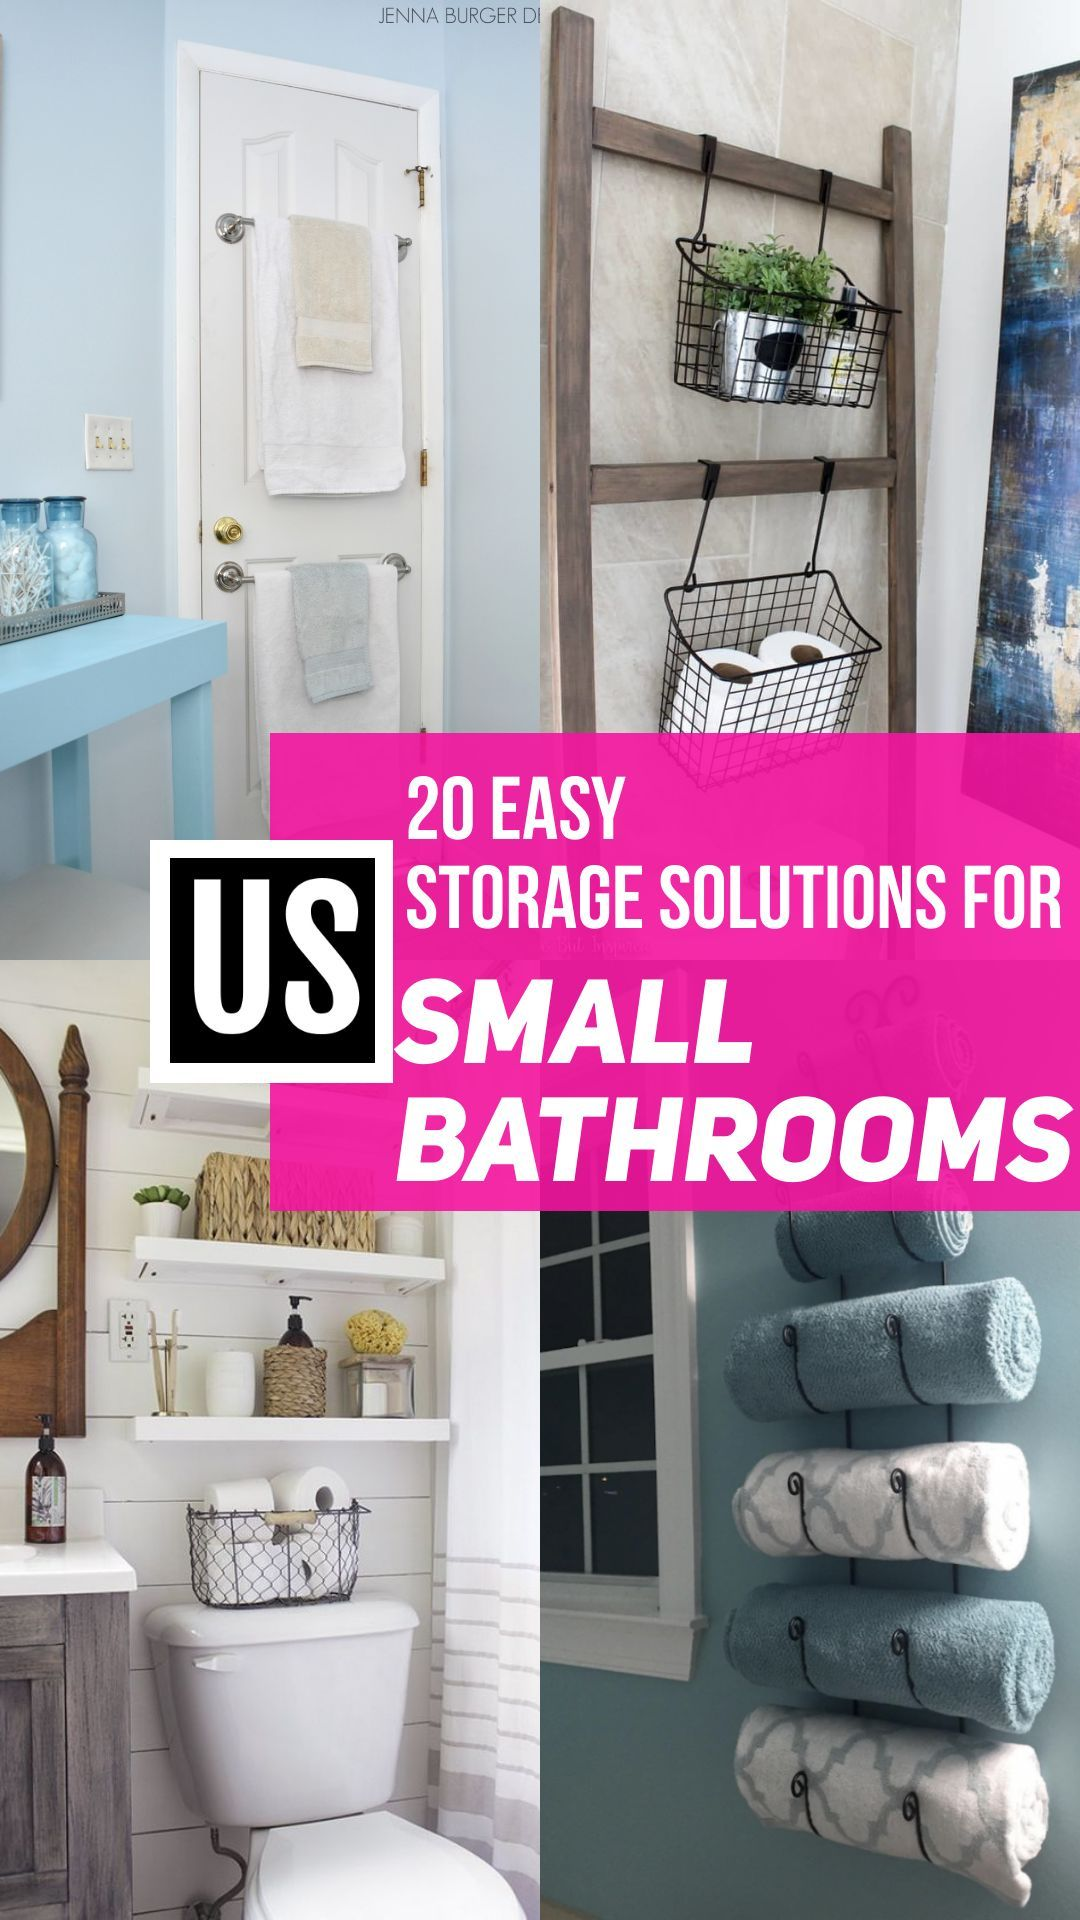 20 Small Bathroom Storage Ideas That Will Crush Your Clutter Organize Declutter In 2020 Small Bathroom Storage Solutions Small Bathroom Storage Bathroom Storage Solutions